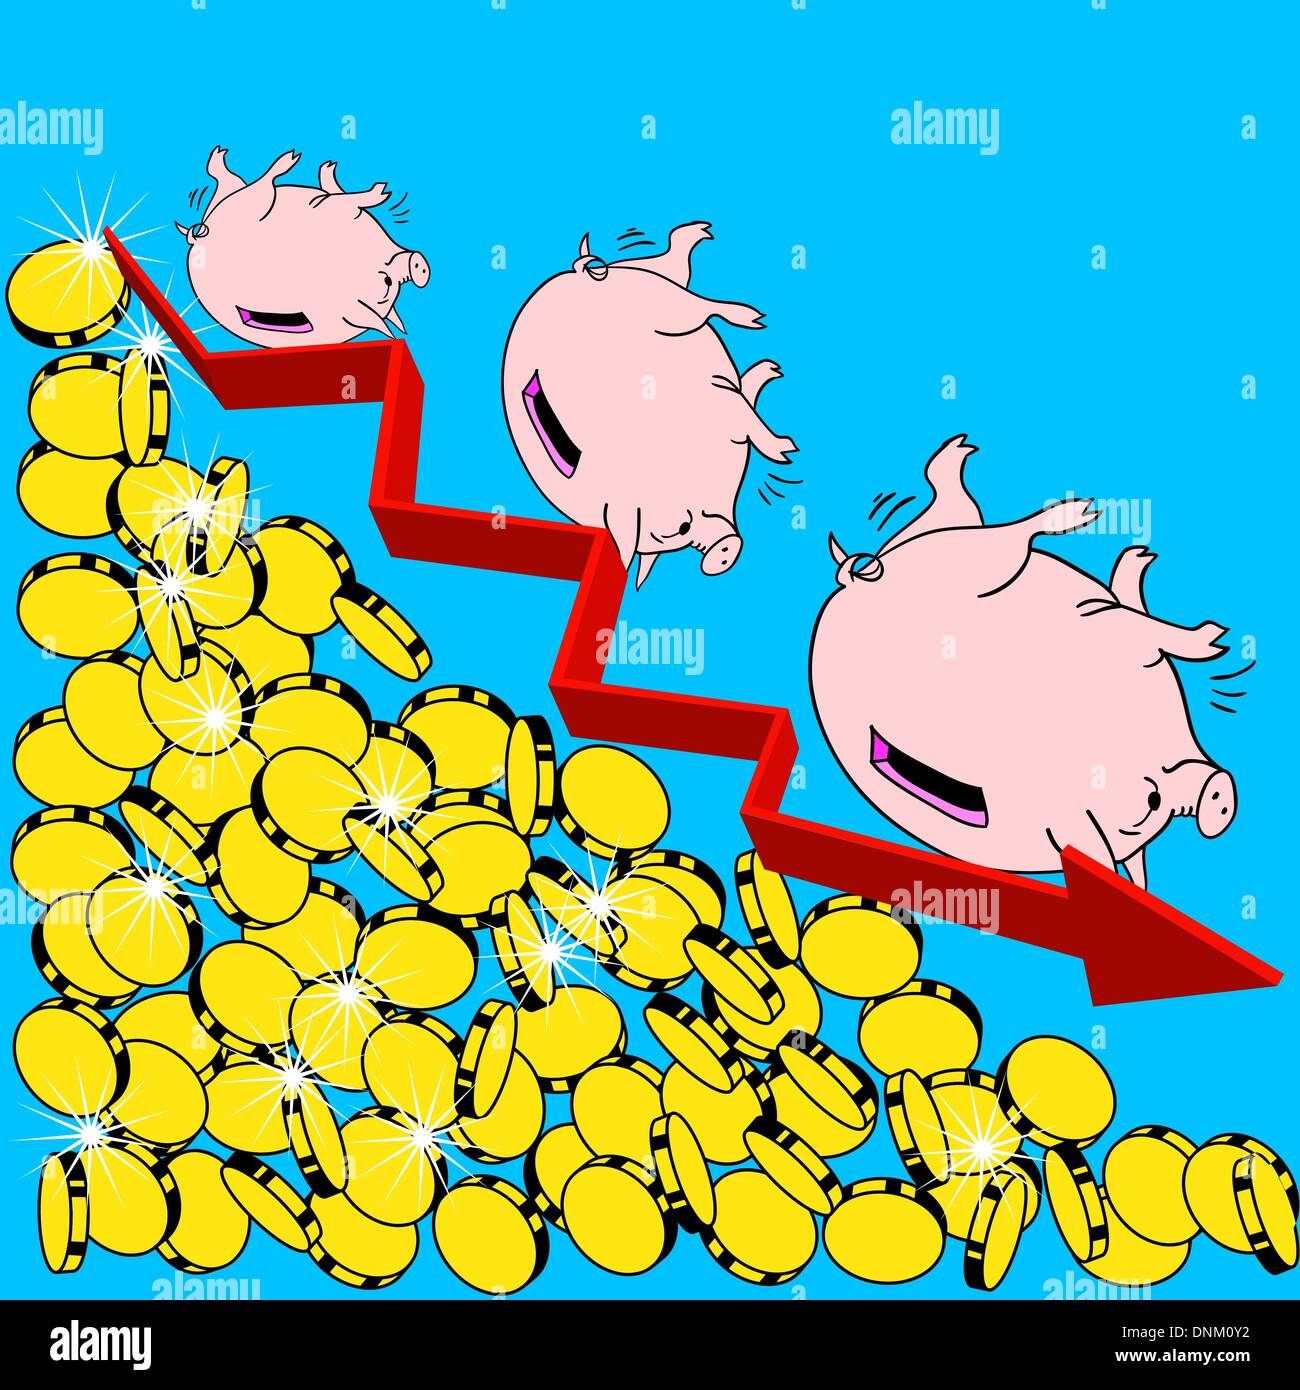 The  financial crisis Concept Illustration - Stock Image